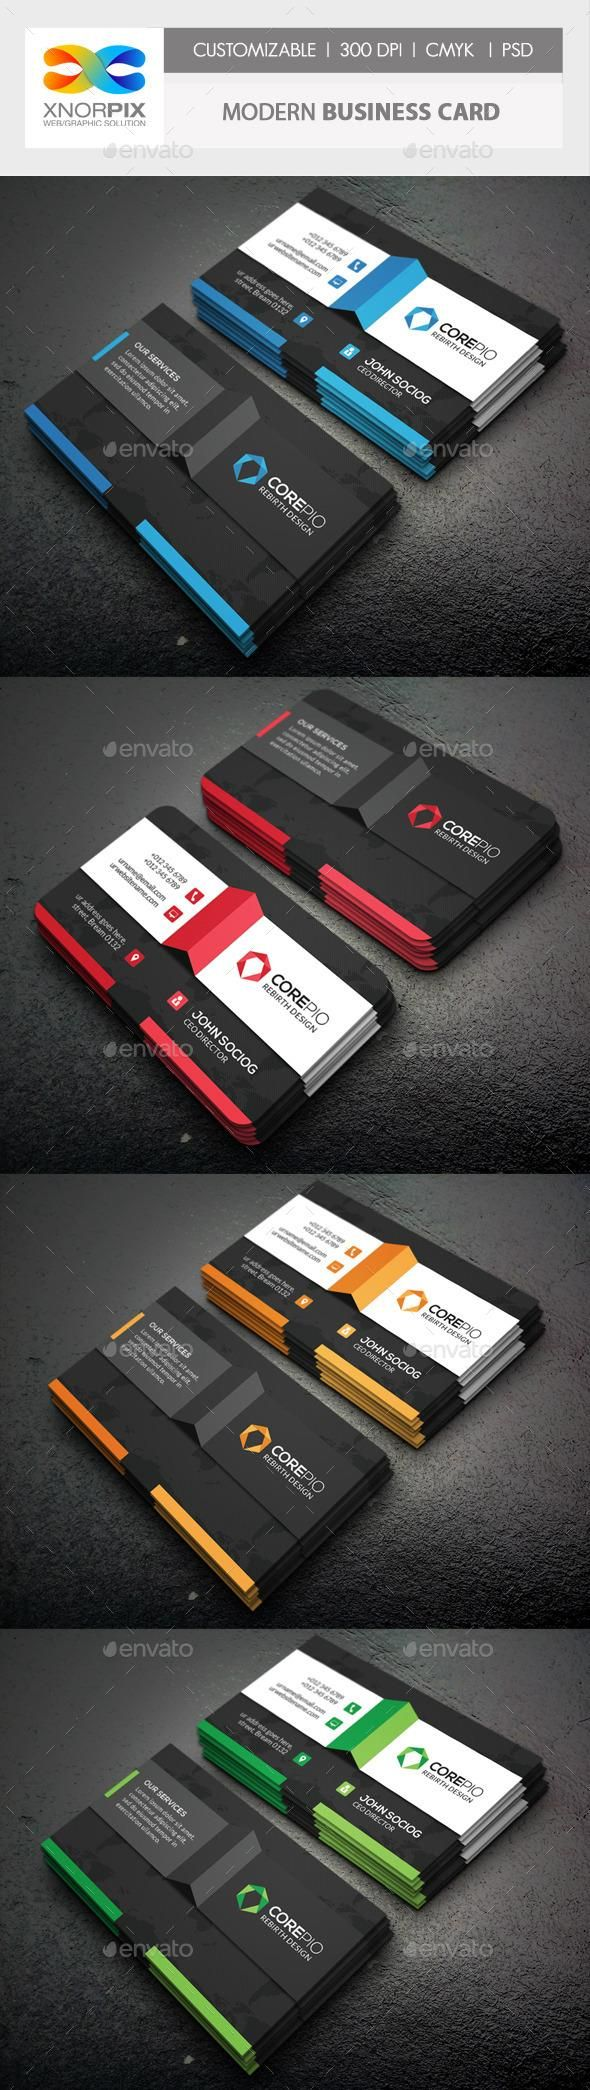 363 best Business Card Design images on Pinterest | Business card ...